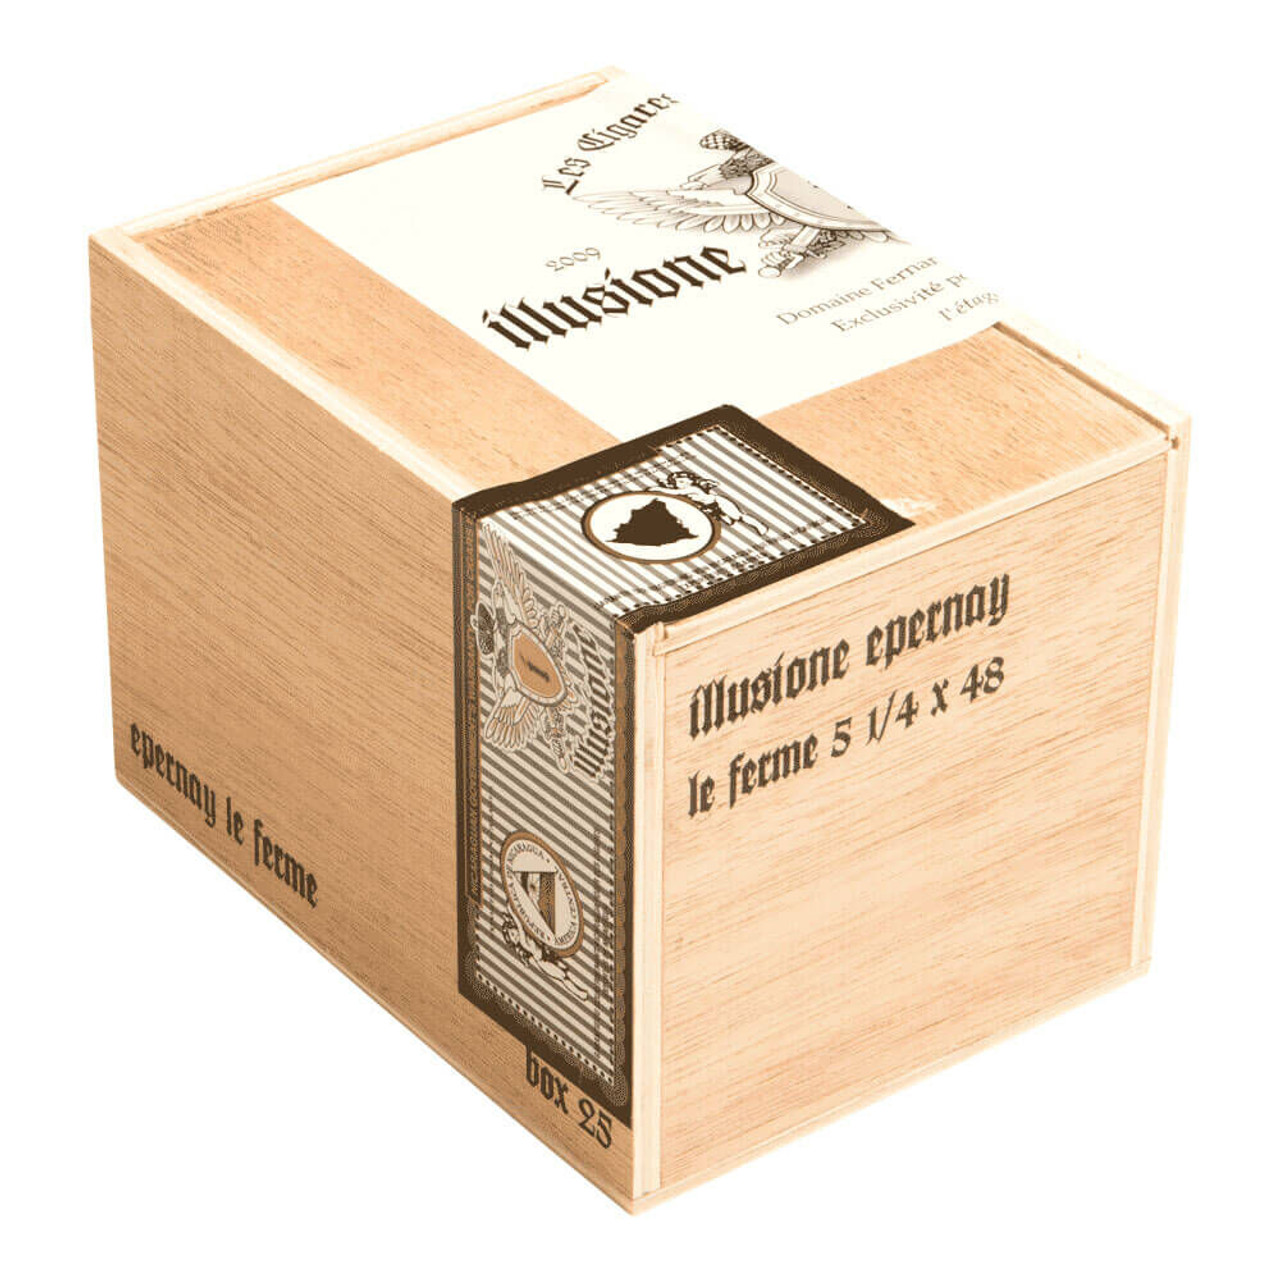 Illusione Epernay Le Ferme Cigars - 5.14 x 48 (Box of 25)